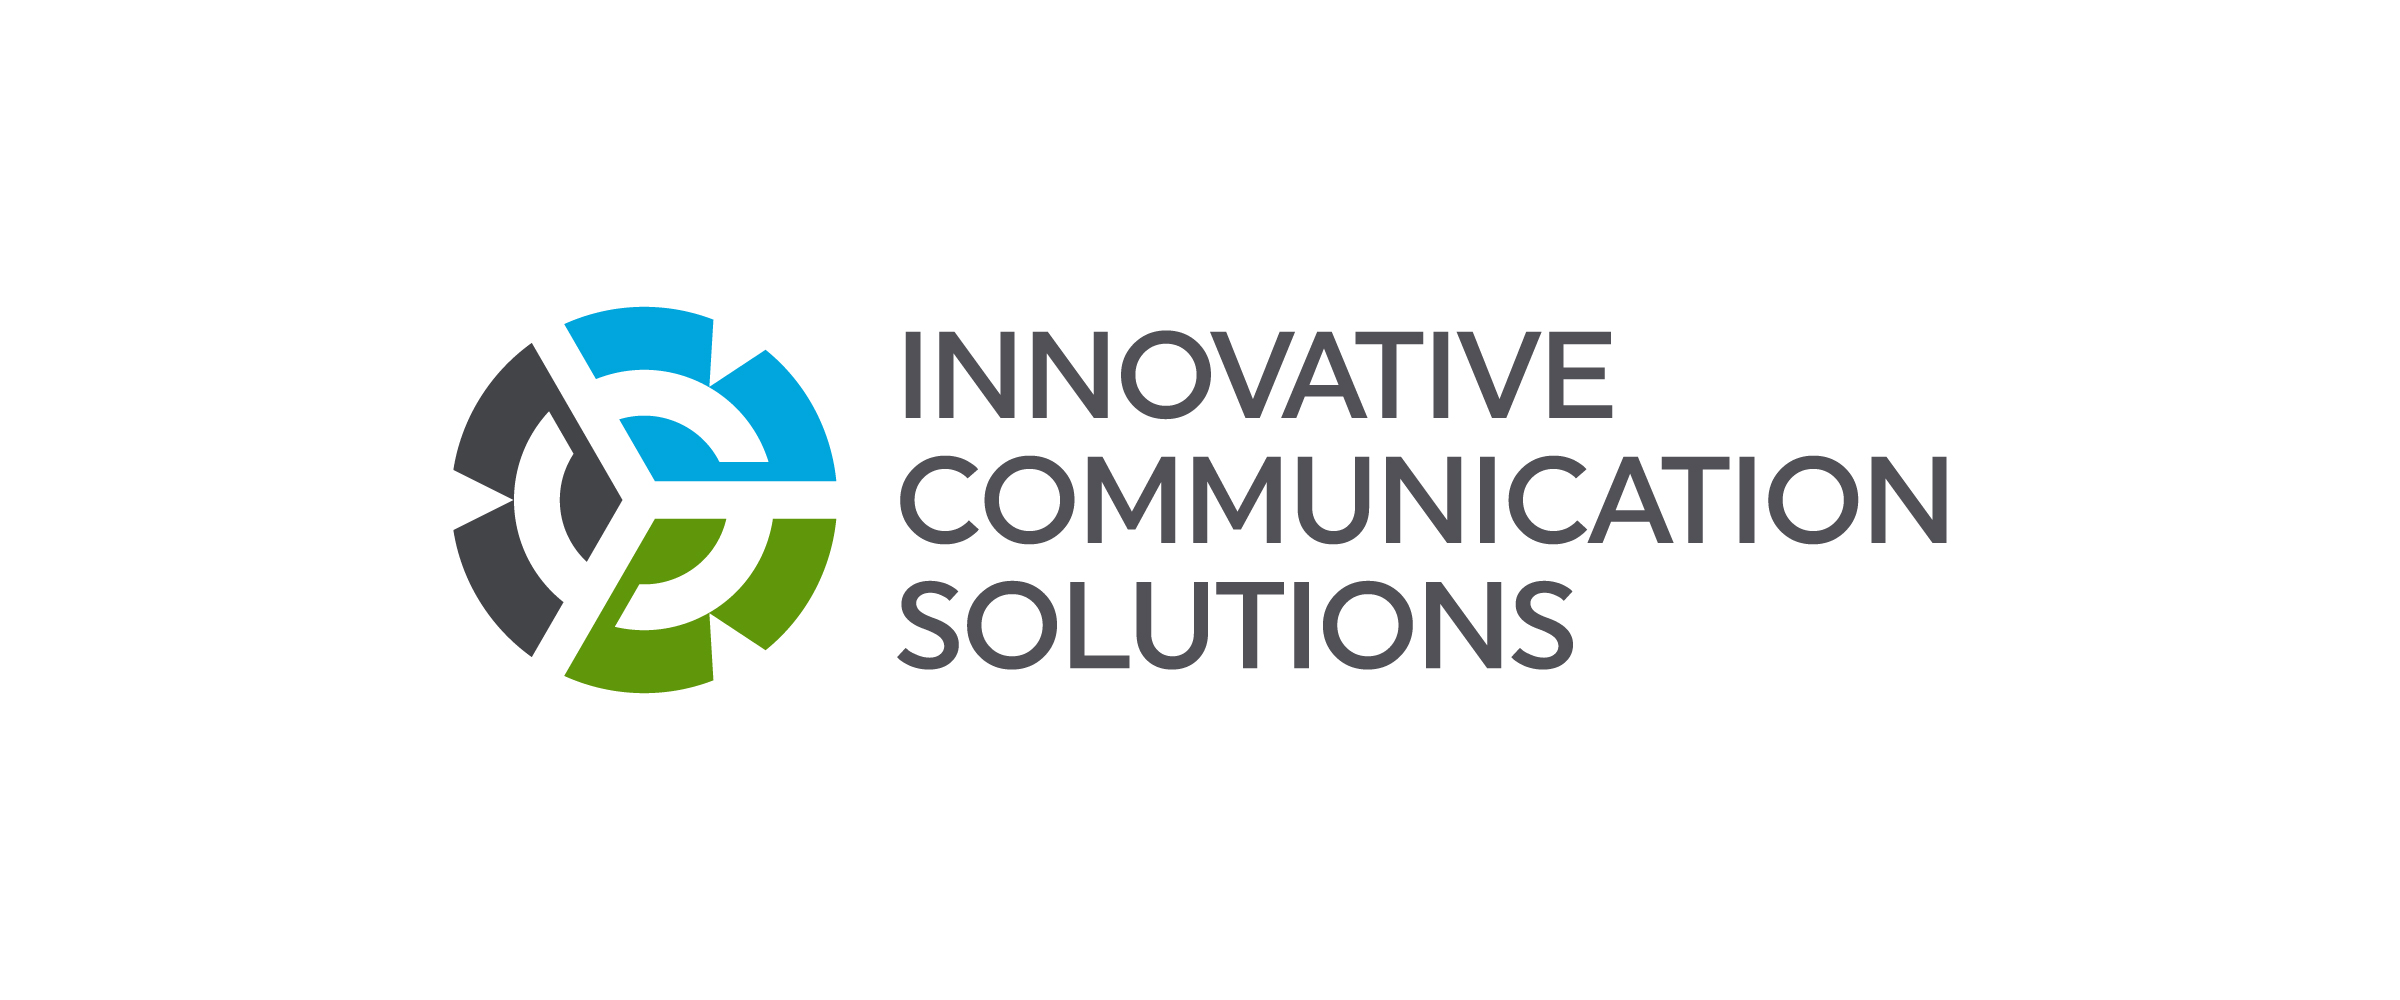 Innovative Communication Solutions